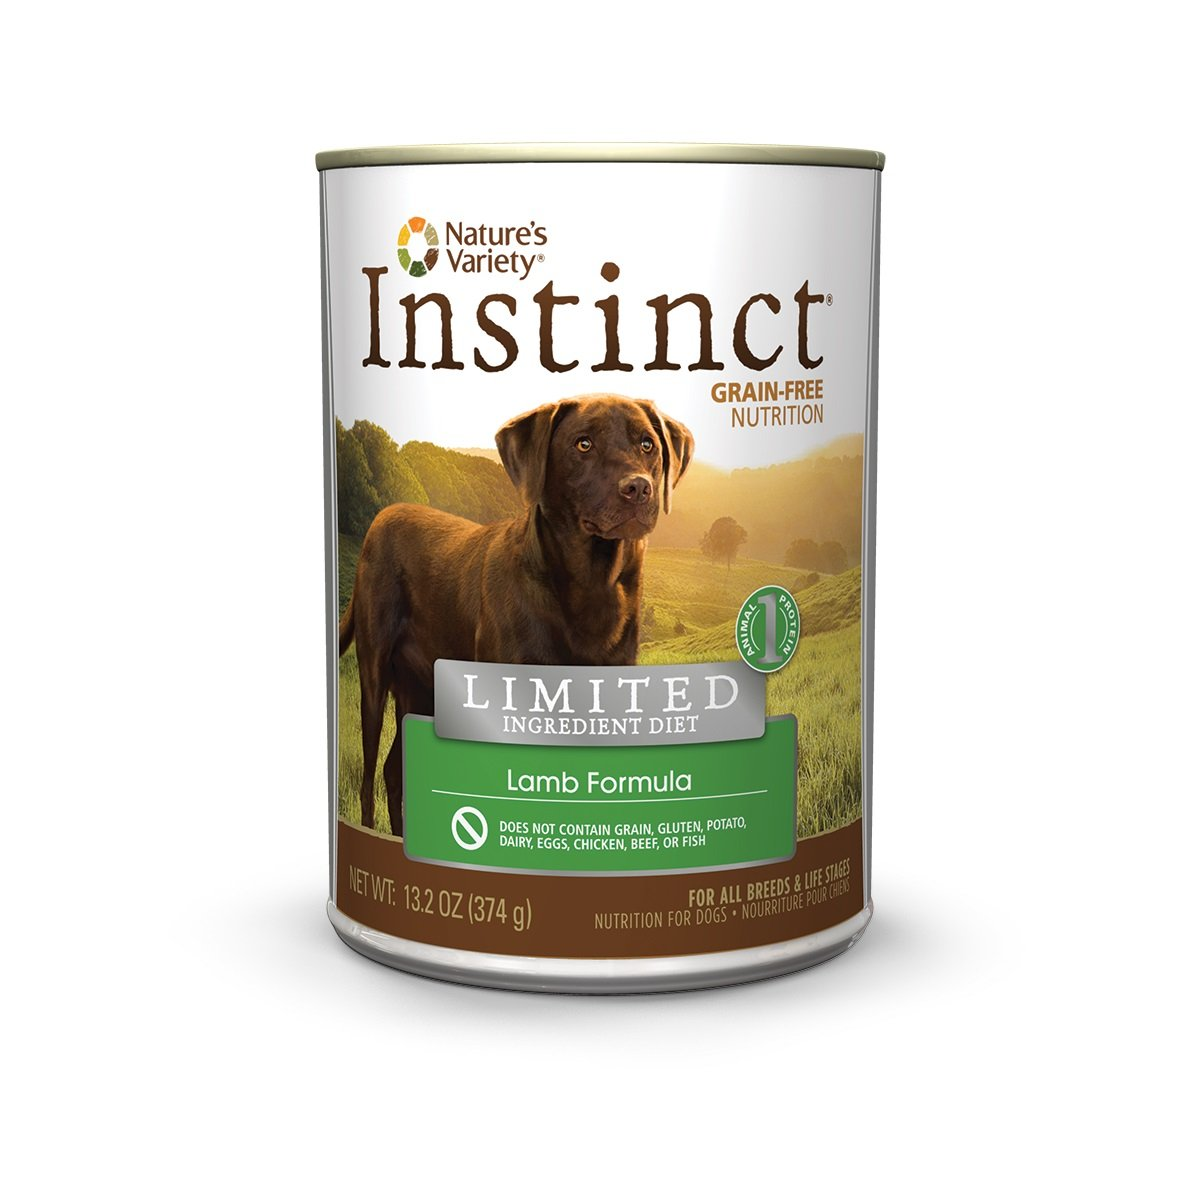 Nature's Variety Instinct Limited Ingredient Diet Grain Free Lamb Formula Natural Wet Canned Dog Food by, 13.2 oz. Cans (Case of 12)